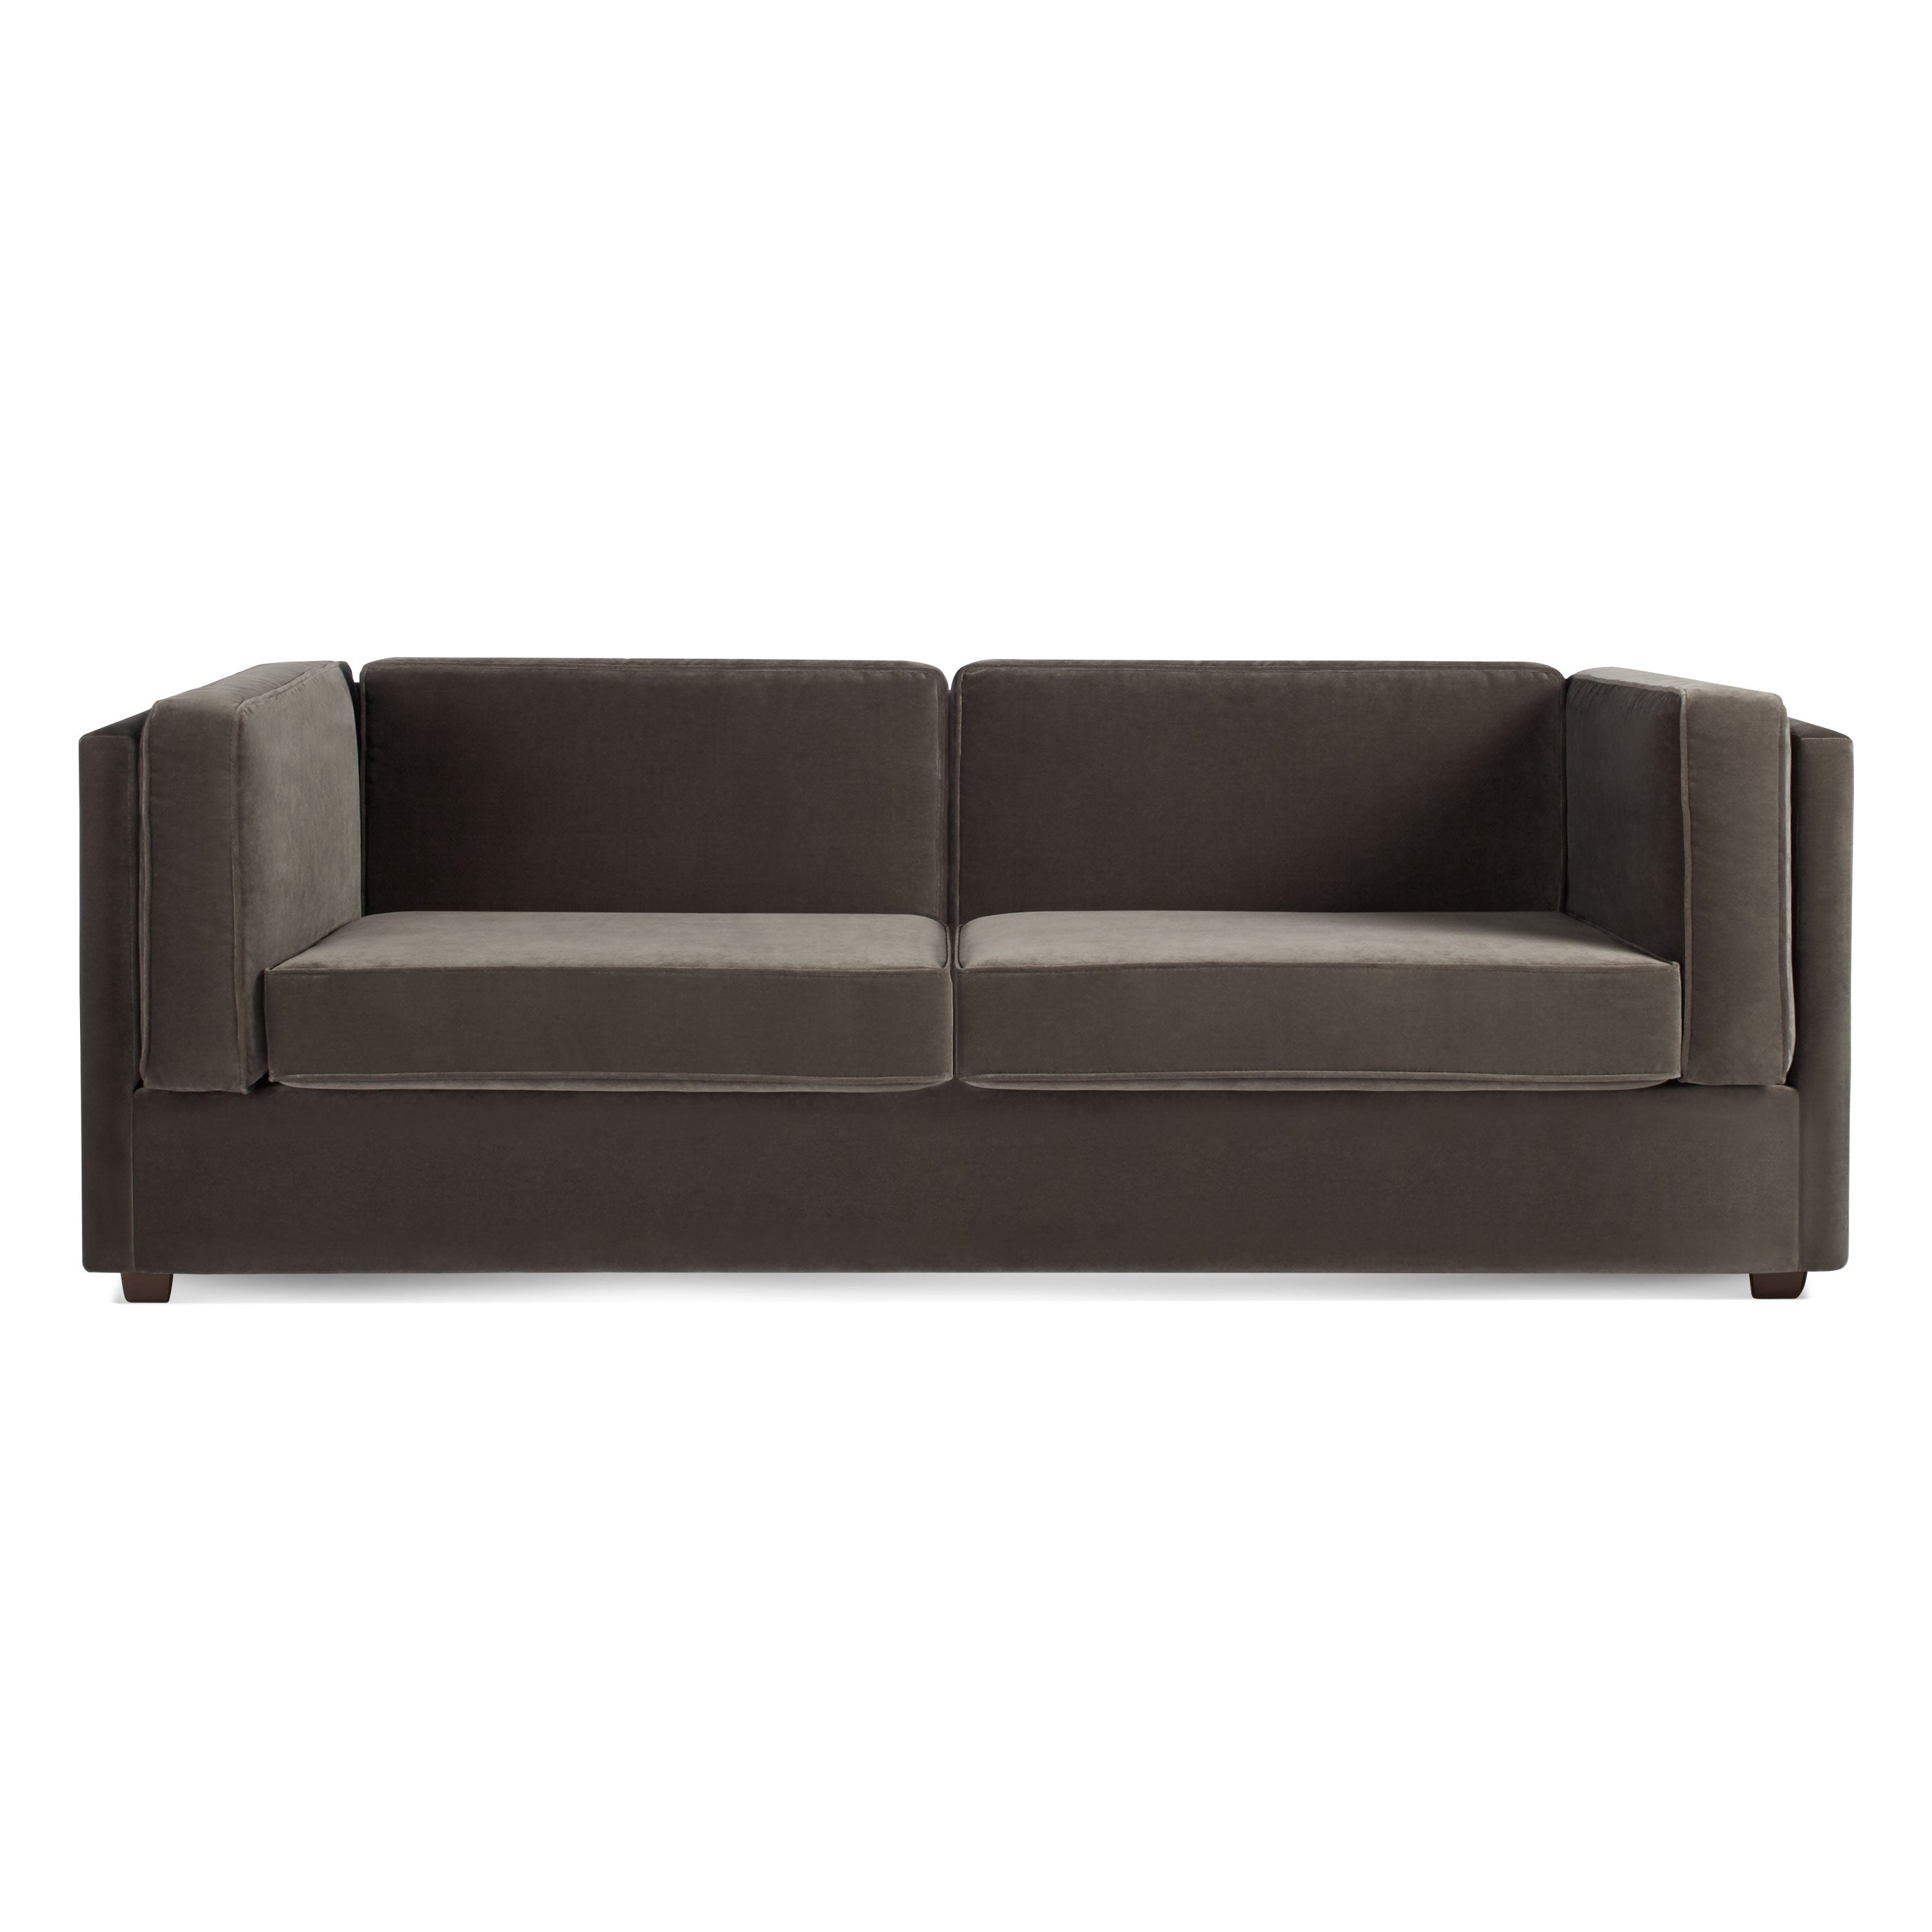 "Bank Velvet 80"" Sleeper Sofa"